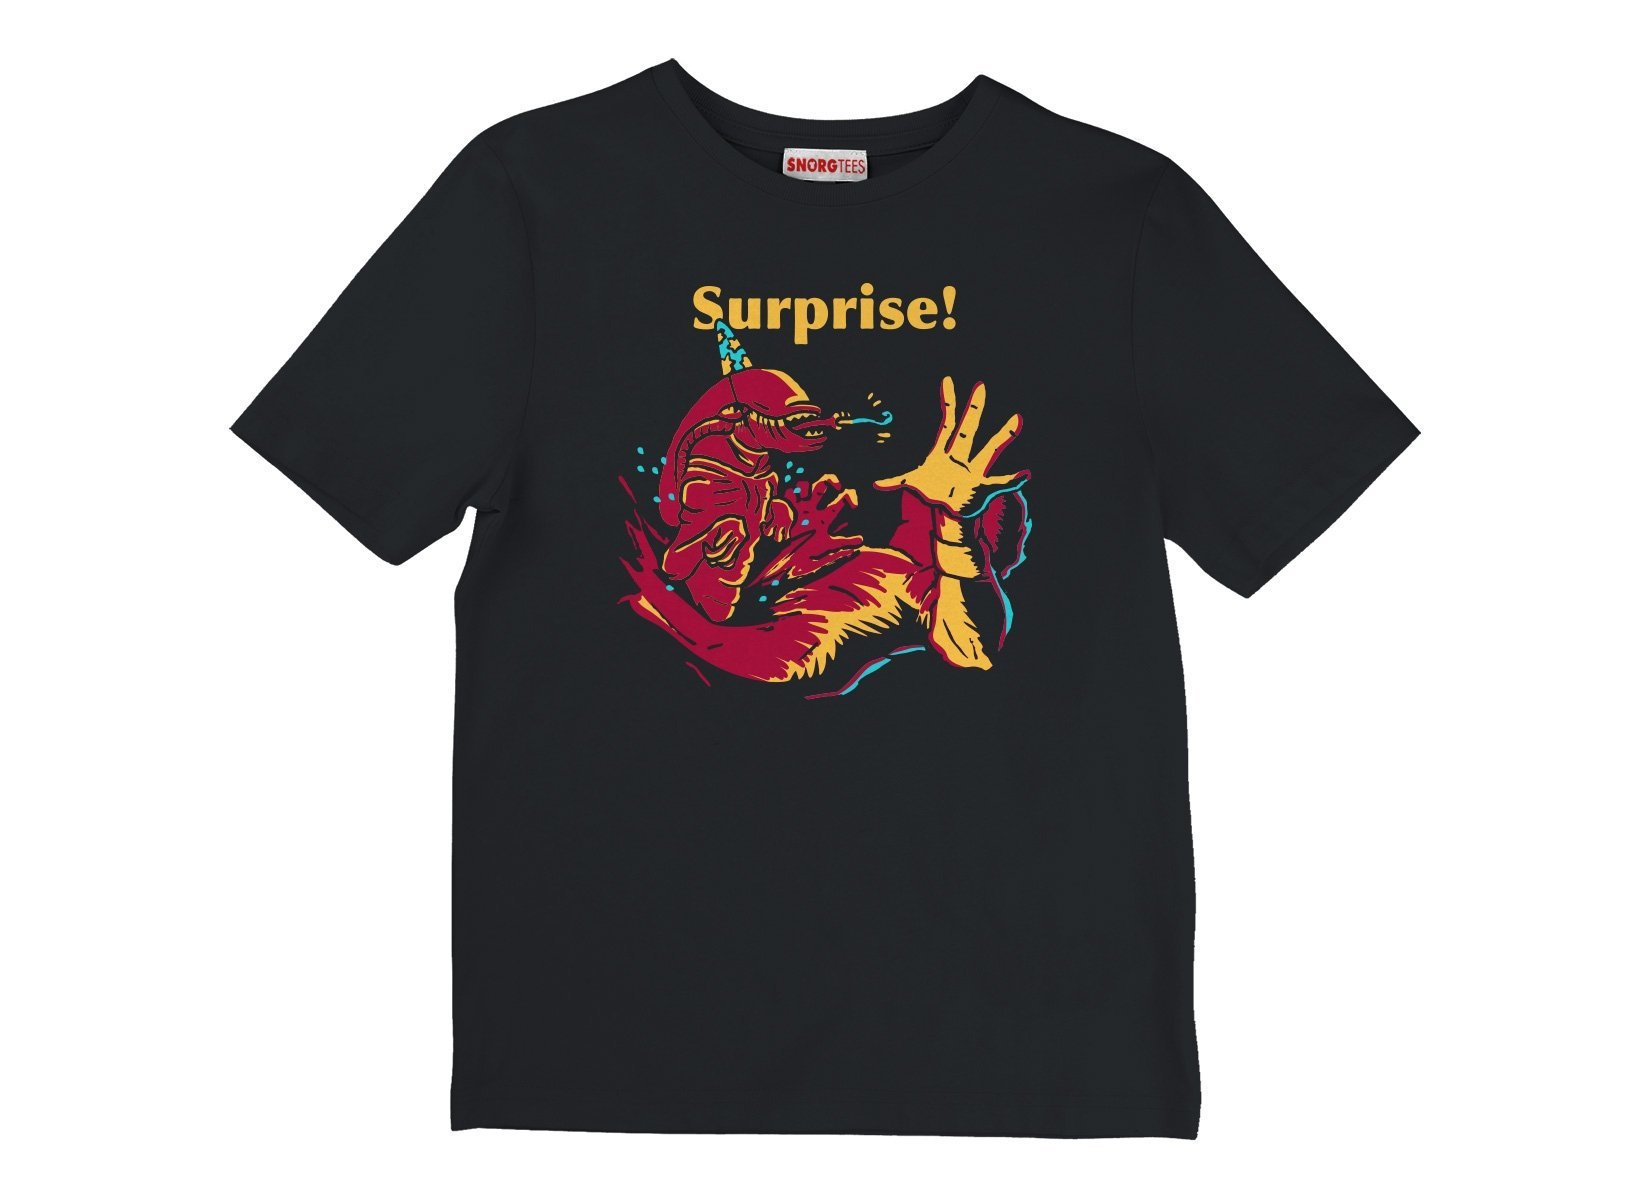 Surprise Party! on Kids T-Shirt